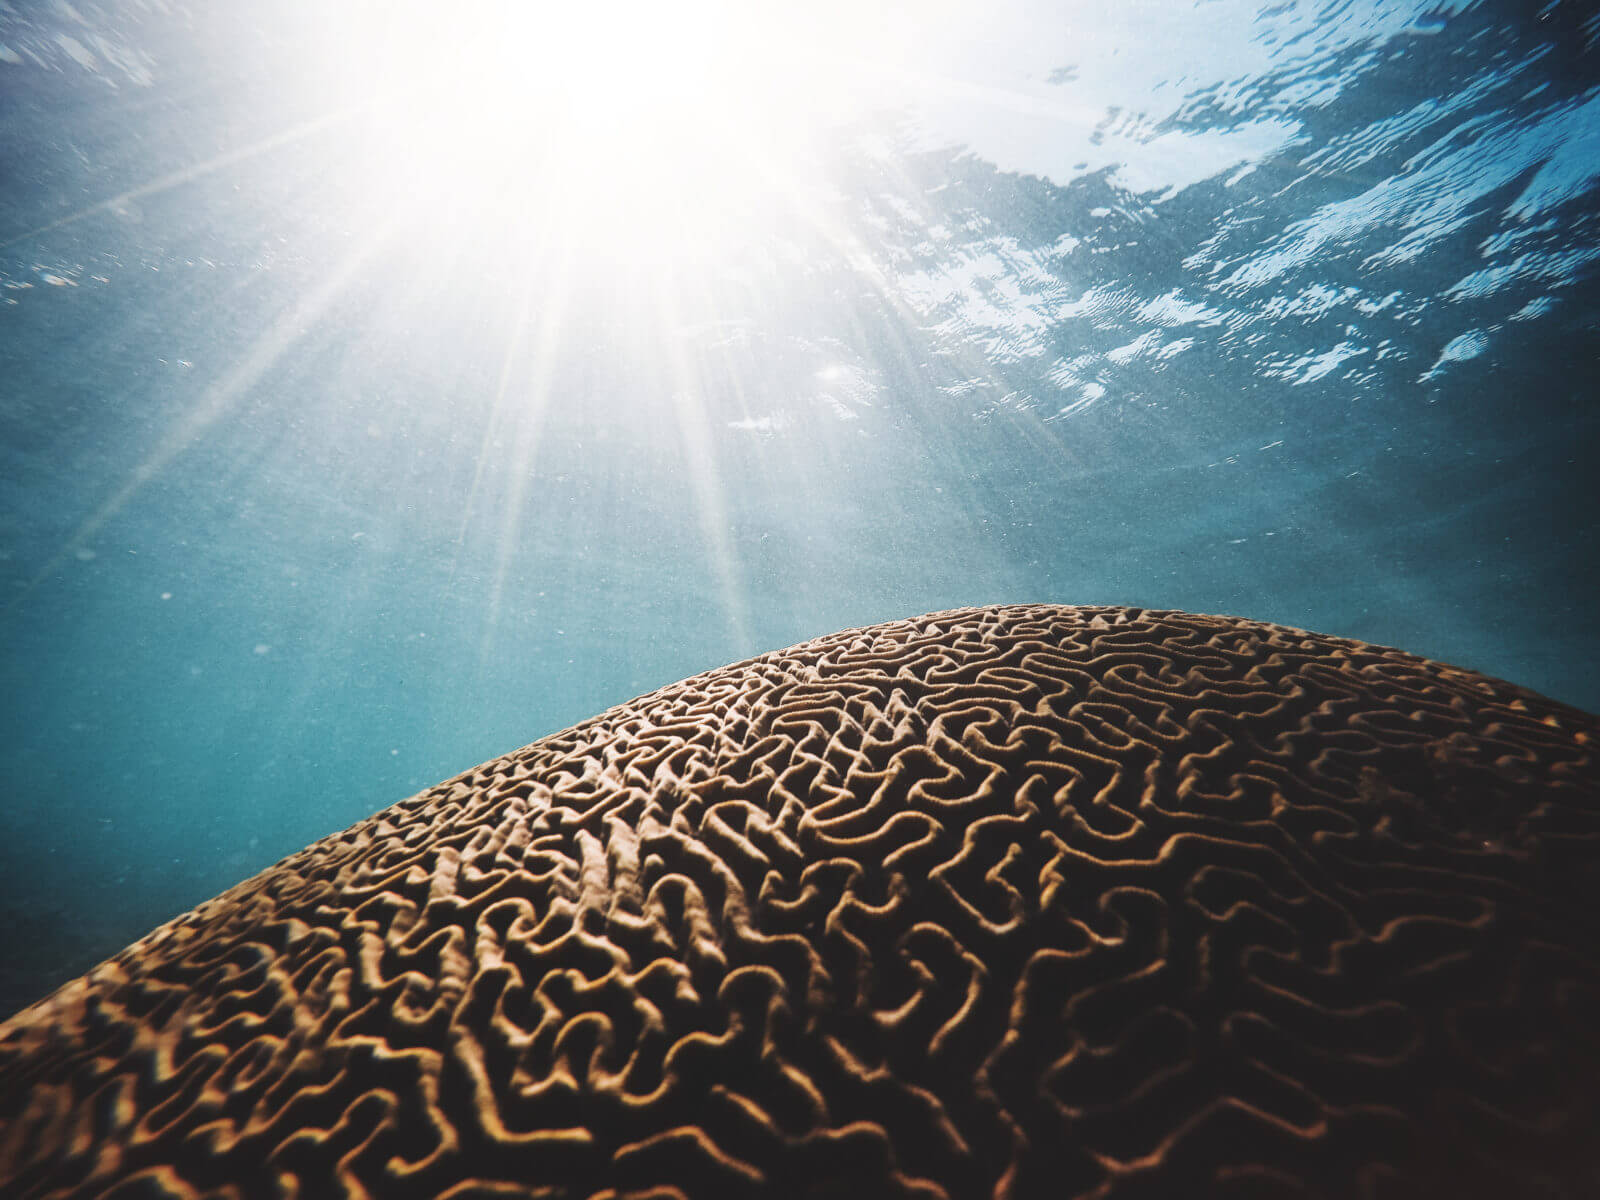 Brain coral – Photo by Daniel Hjalmarsson